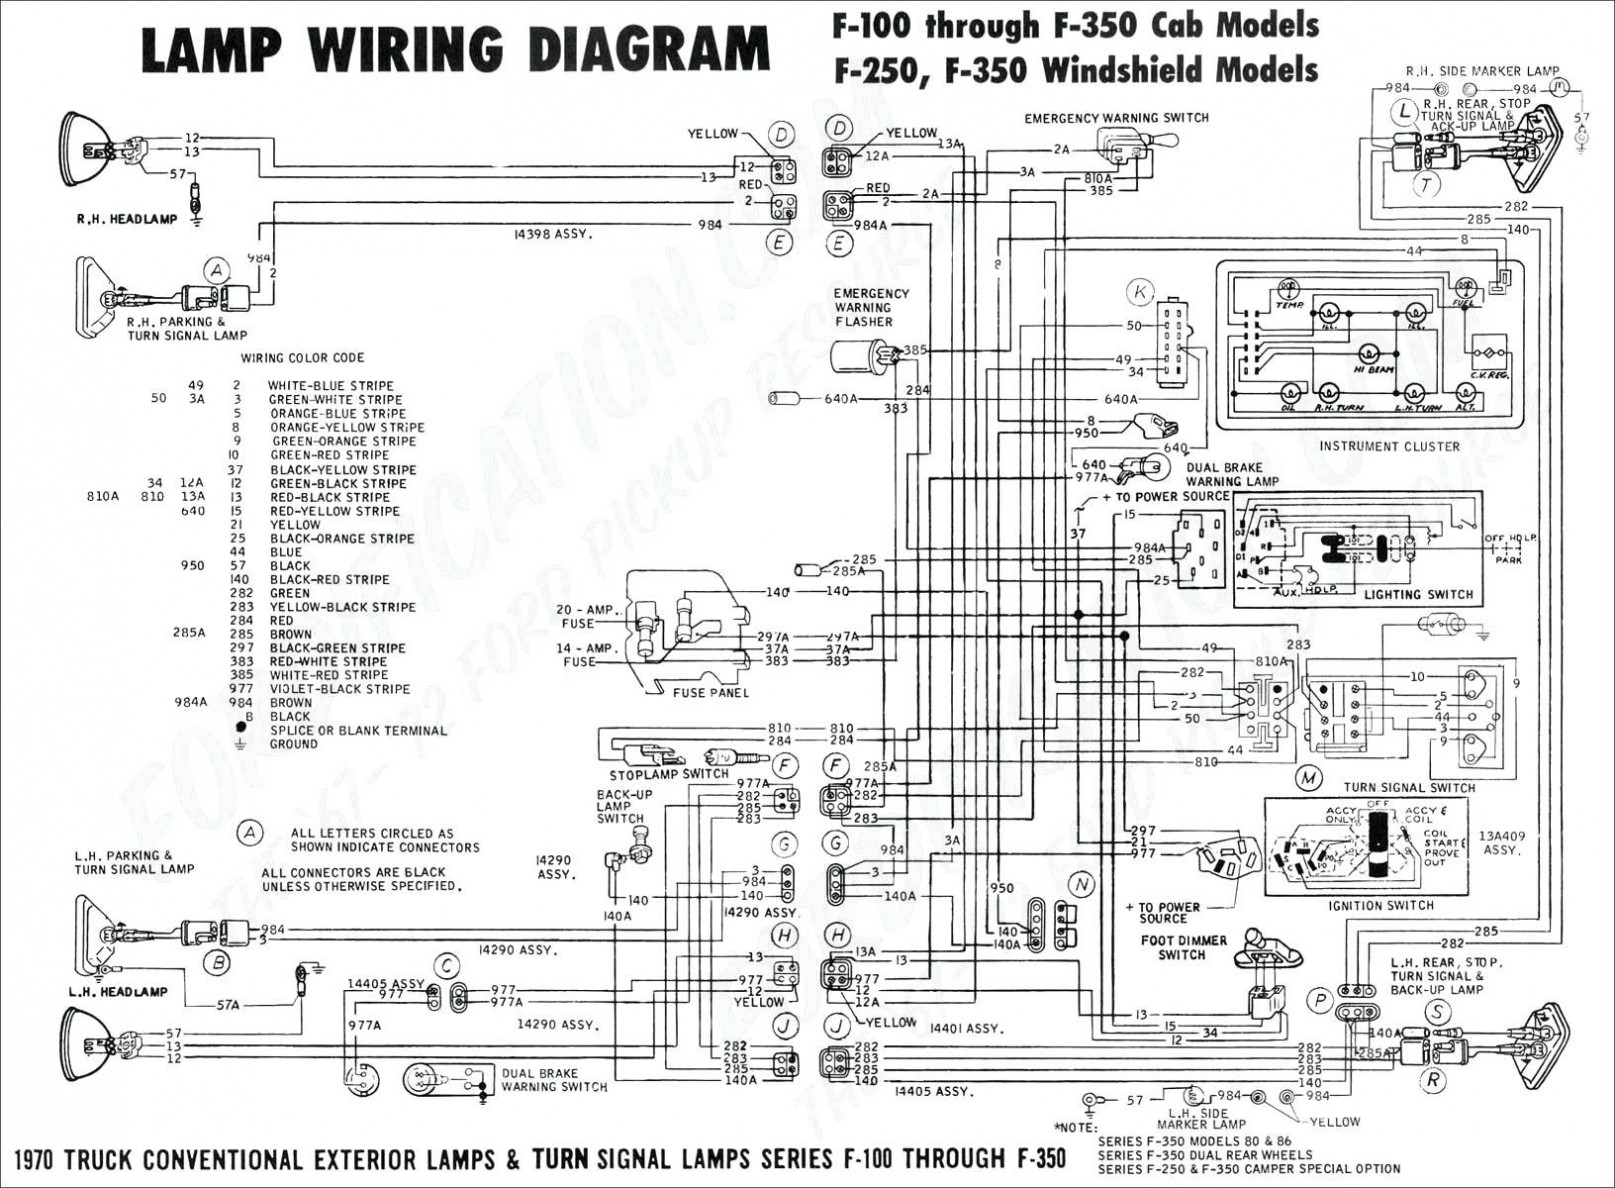 1987 club car wiring diagram further fm radio transmitter schematic rh sellfie co Universal Product Code